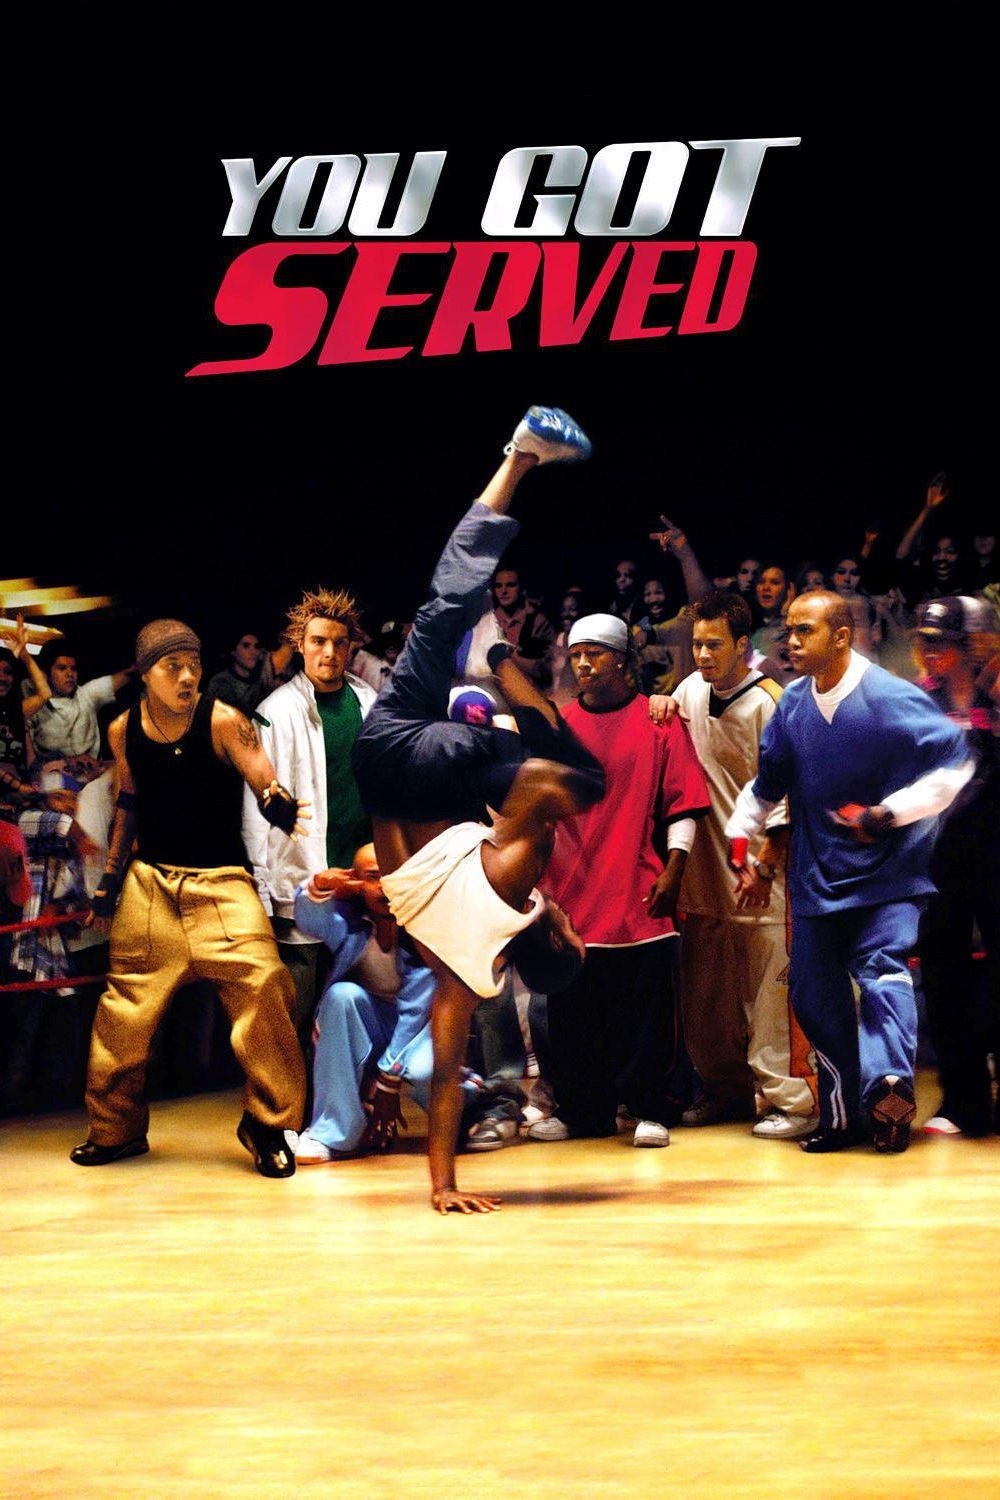 you-got-served.22489.jpg